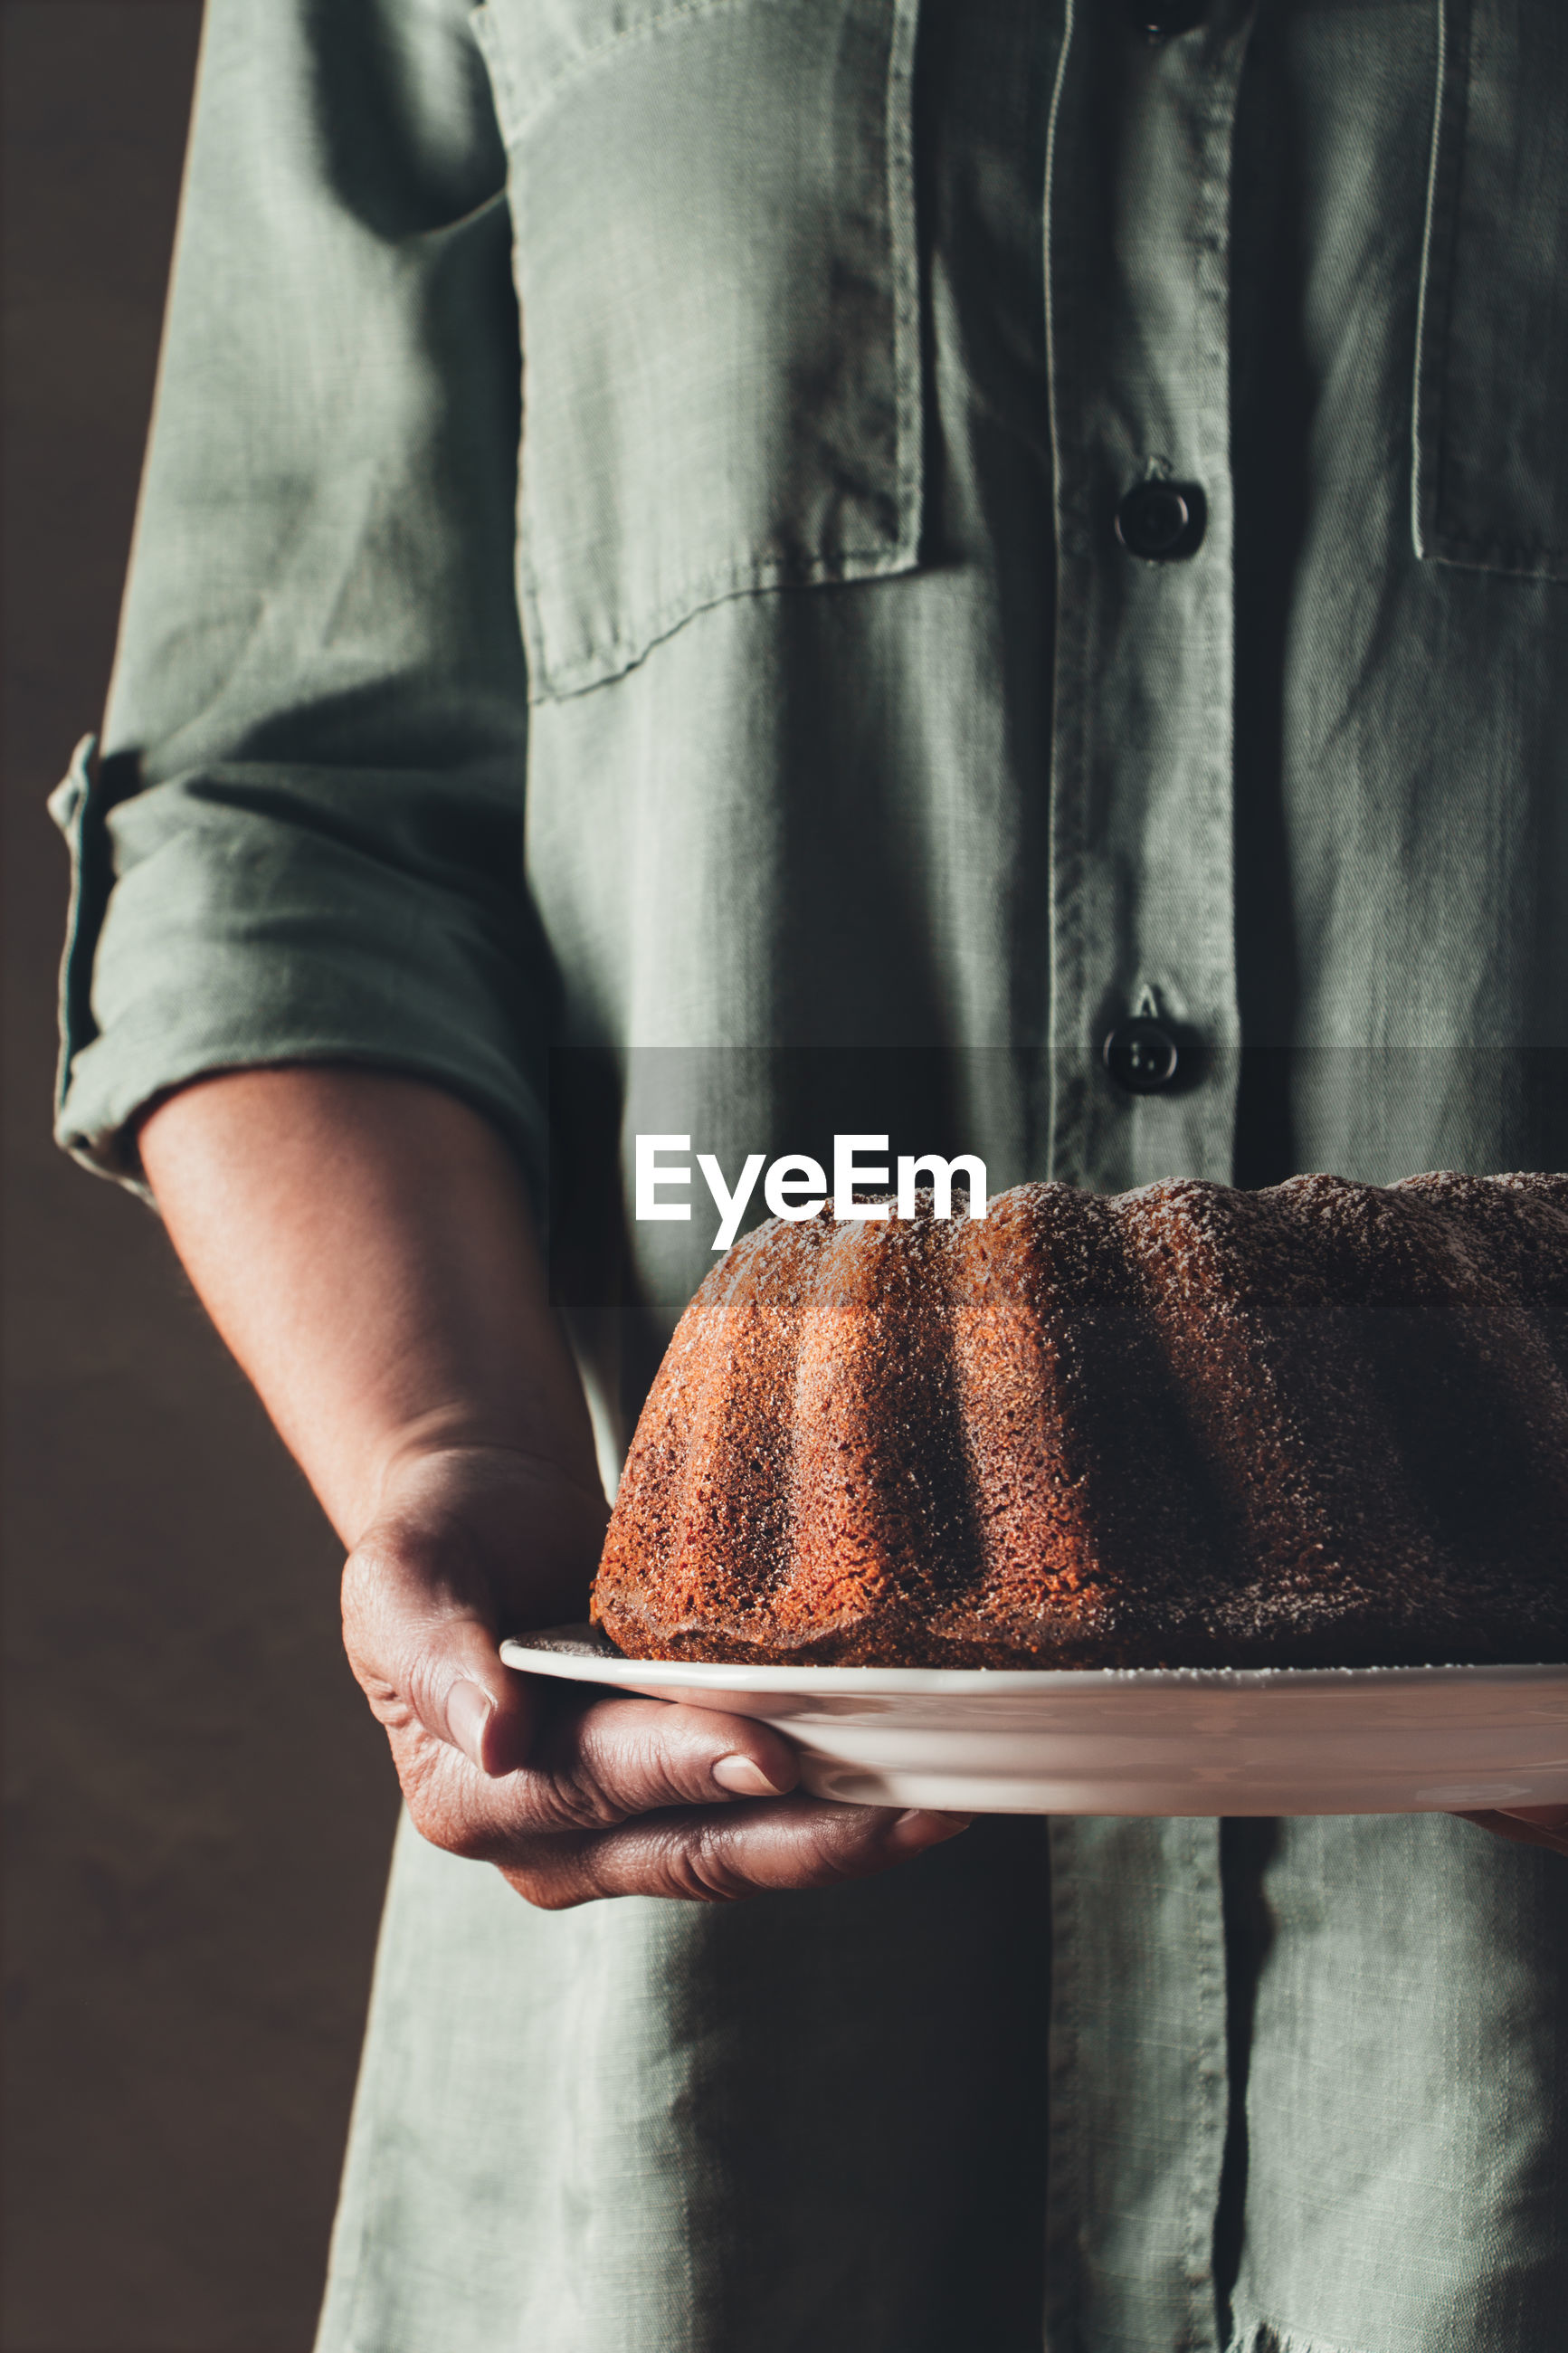 Midsection of man holding bundt cake in plate